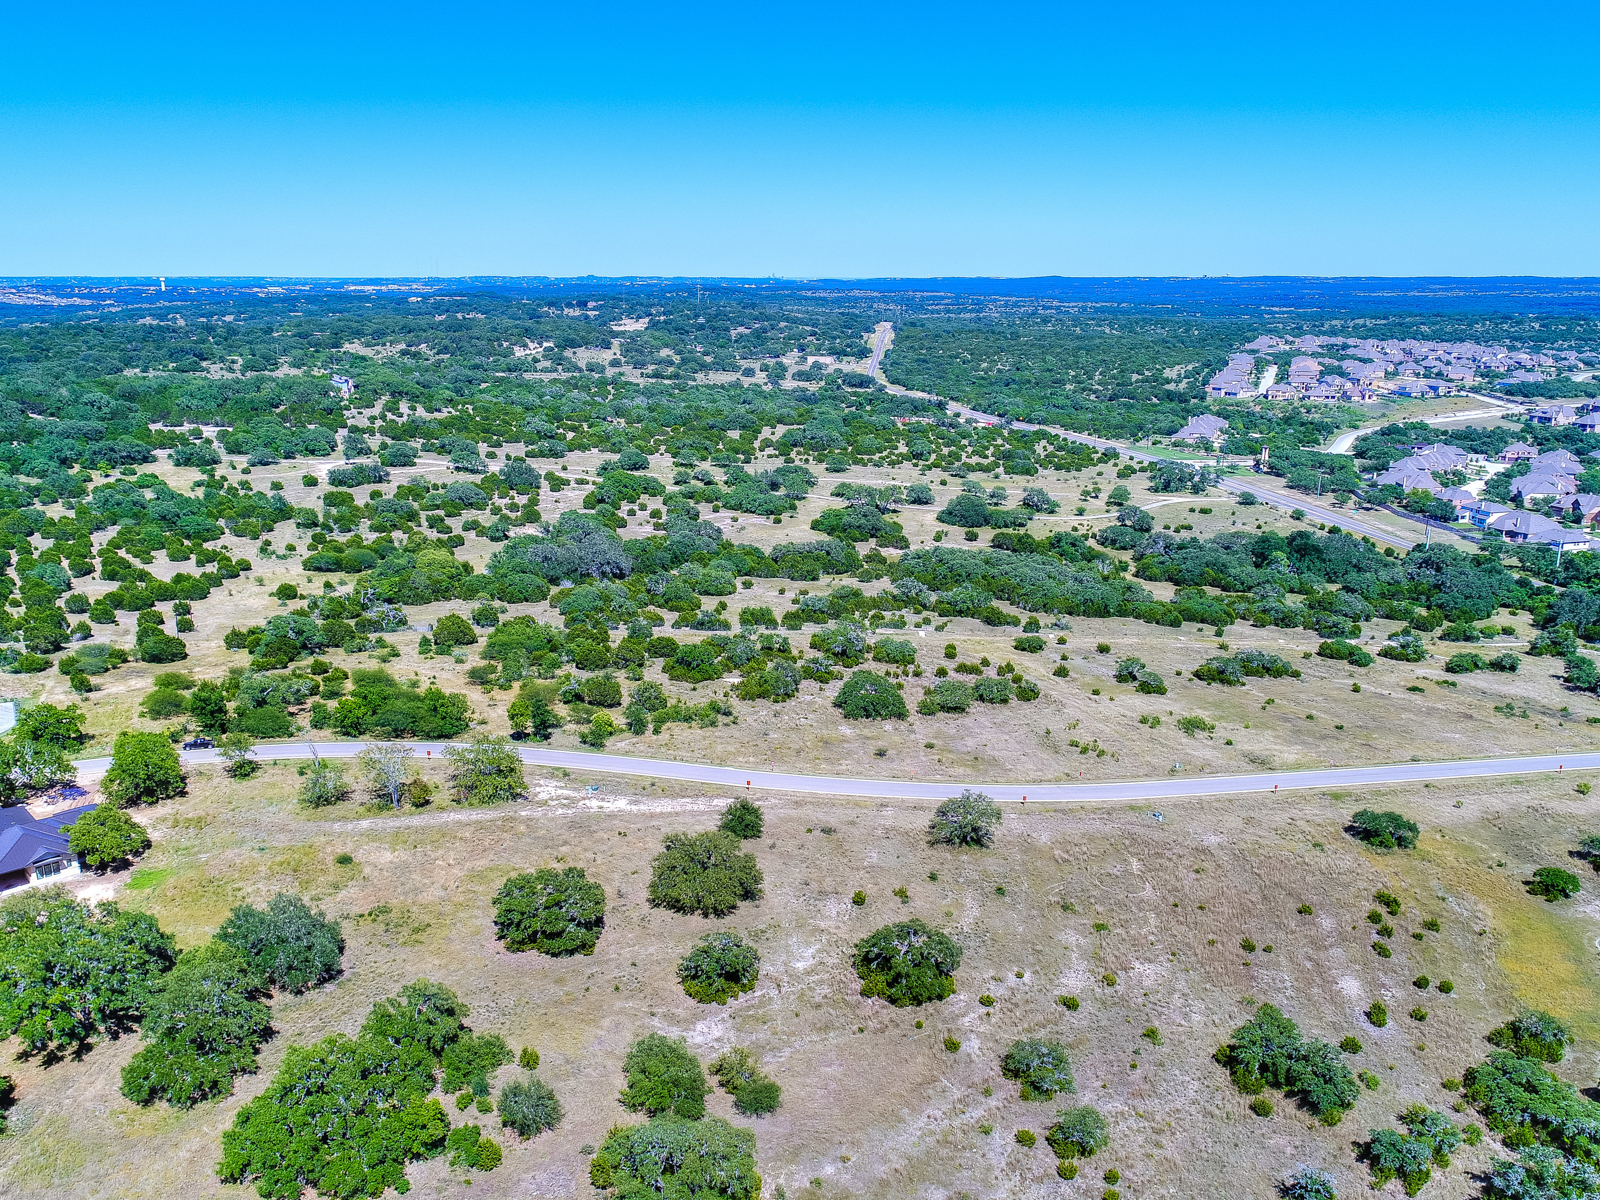 Land for Sale at 1.6 Acre Homesite Backing to Greenbelt 8708 Springdale Ridge Dr Austin, Texas 78738 United States